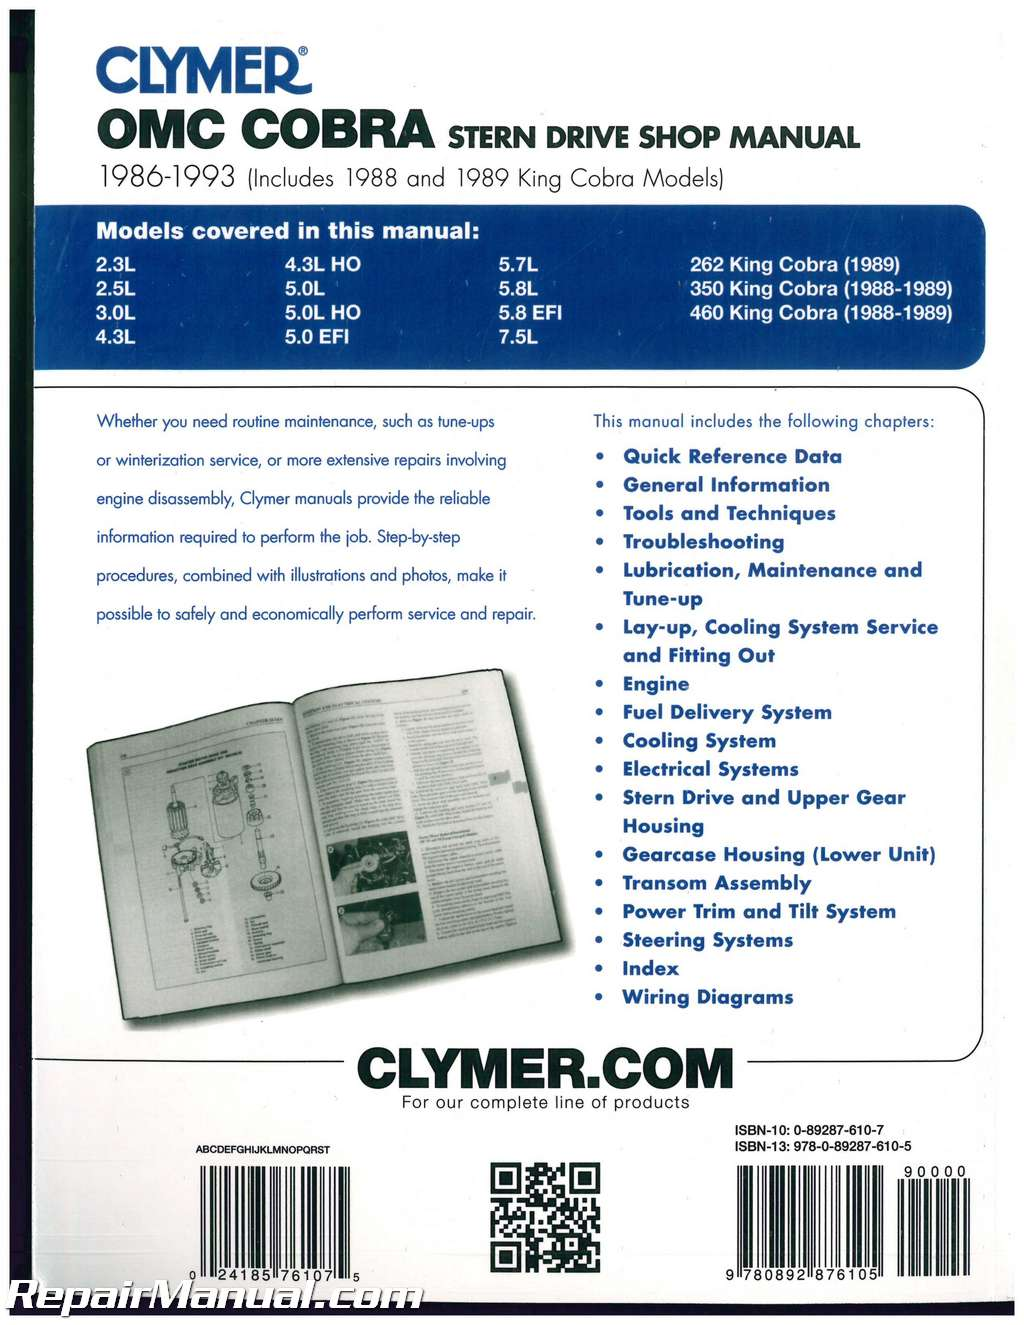 boat wiring diagrams manuals diagram for 1986 chevy truck clymer omc cobra 1993 stern drive engine repair